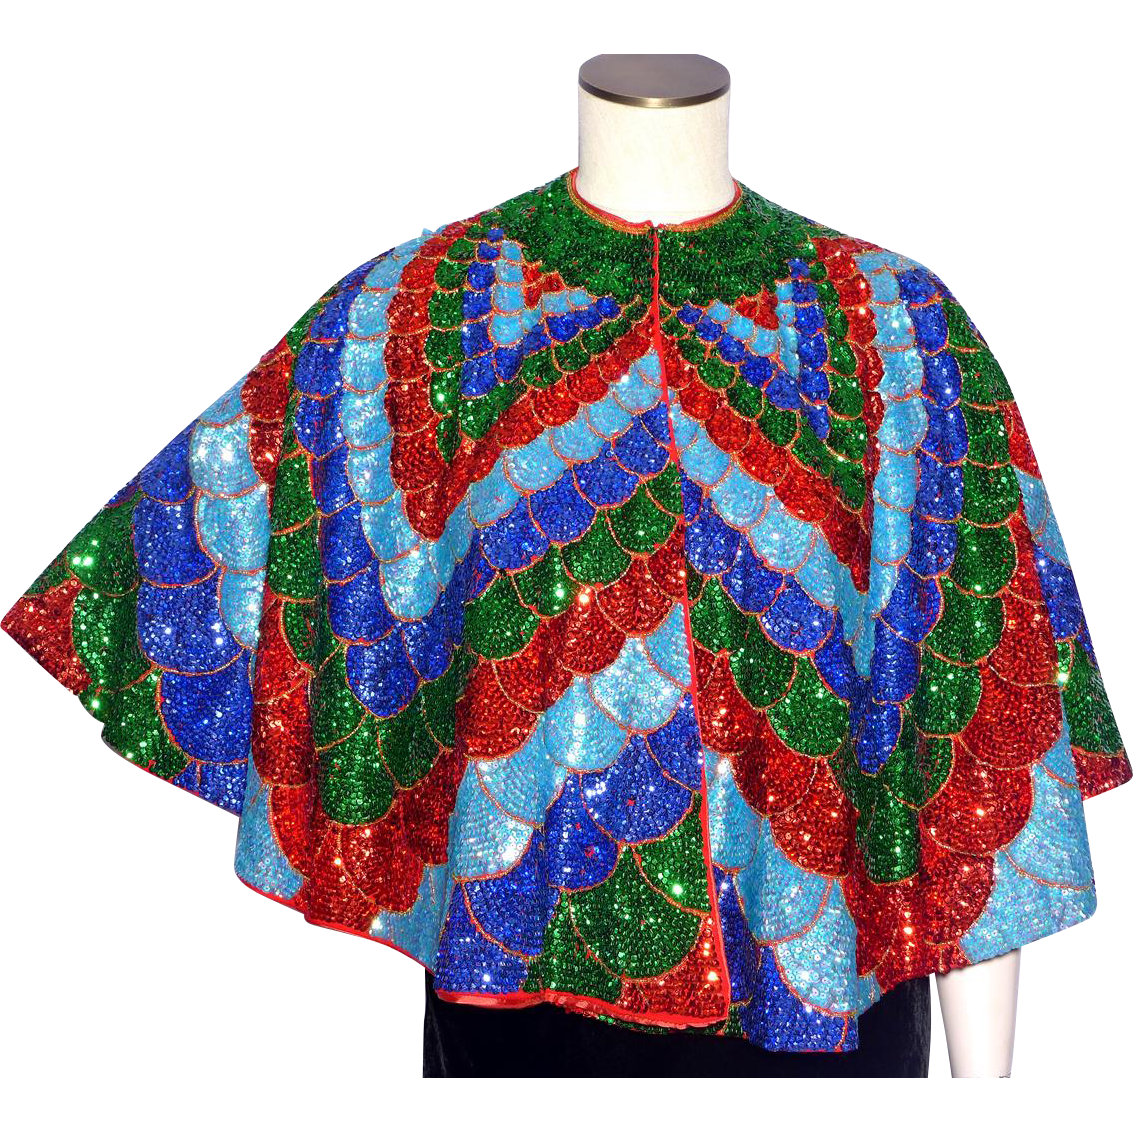 Vintage 1970s Sequined Cape Disco Era Over The Top : My ...